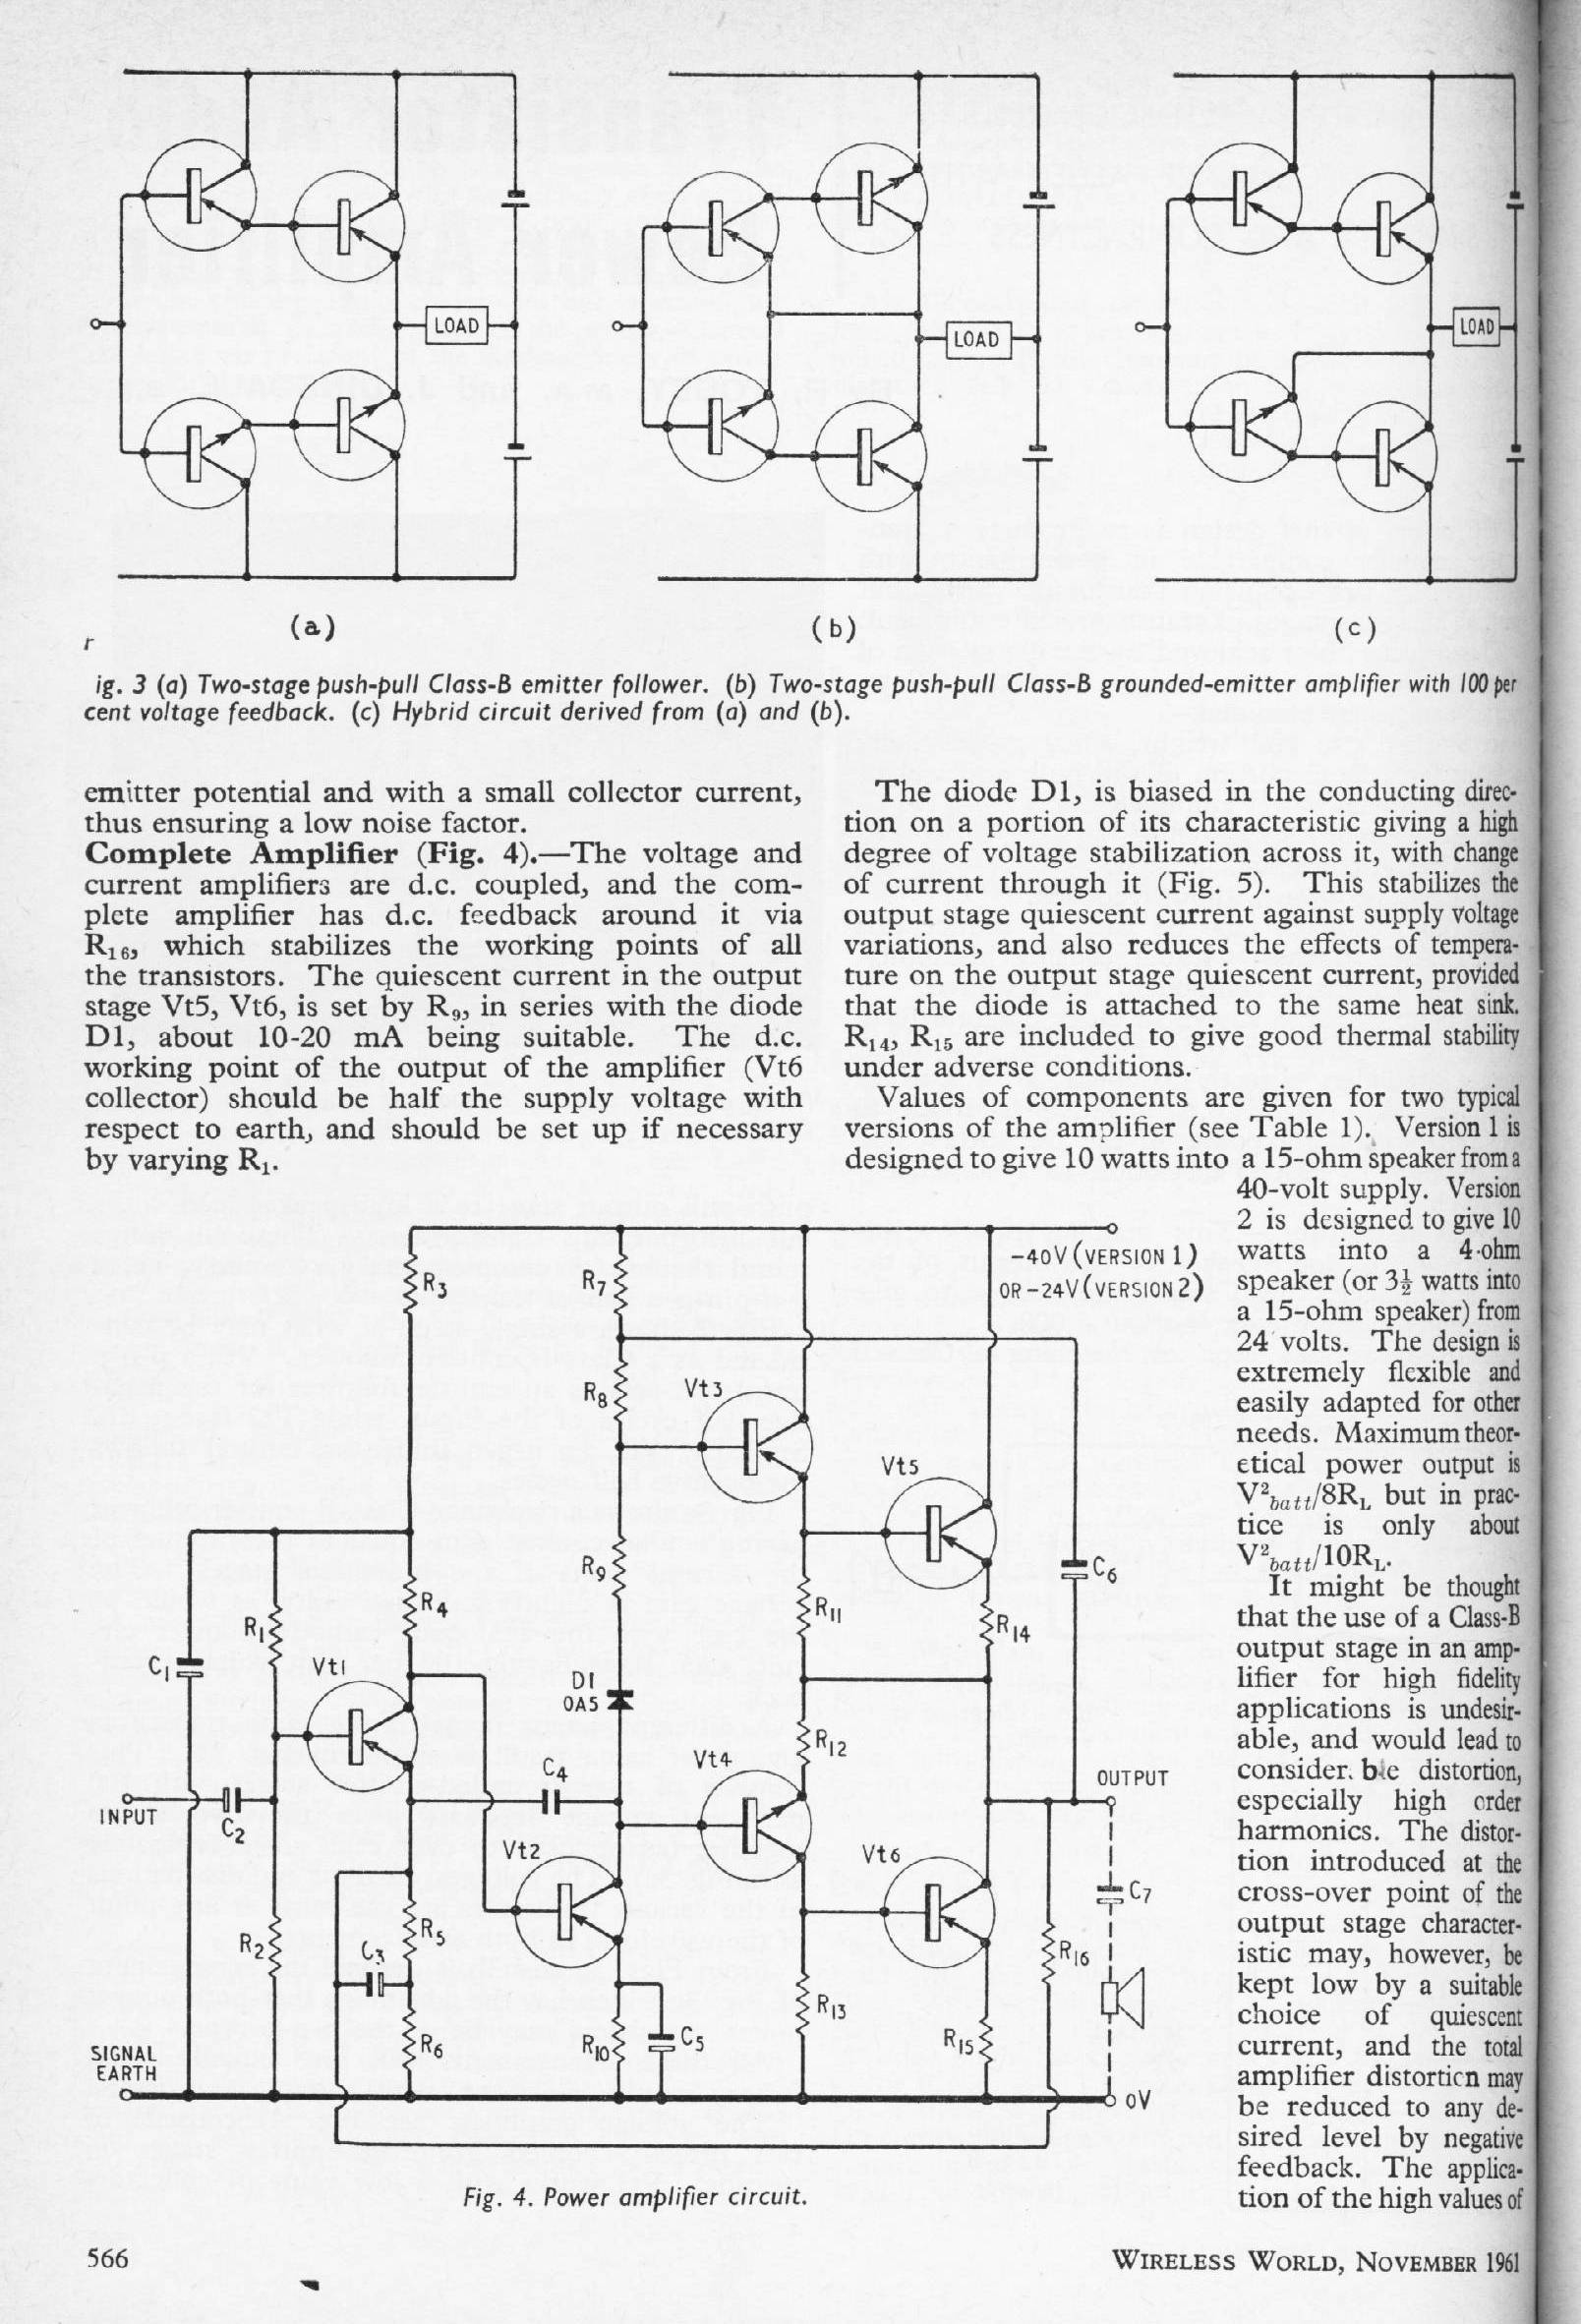 Linear Audio Cube Law Amp Vol8 Article Supplement Class A Amplifier Circuit Voltage Feedback Here Or Cfp As We Now Know It And Was Shown One Of 3 Possible Output